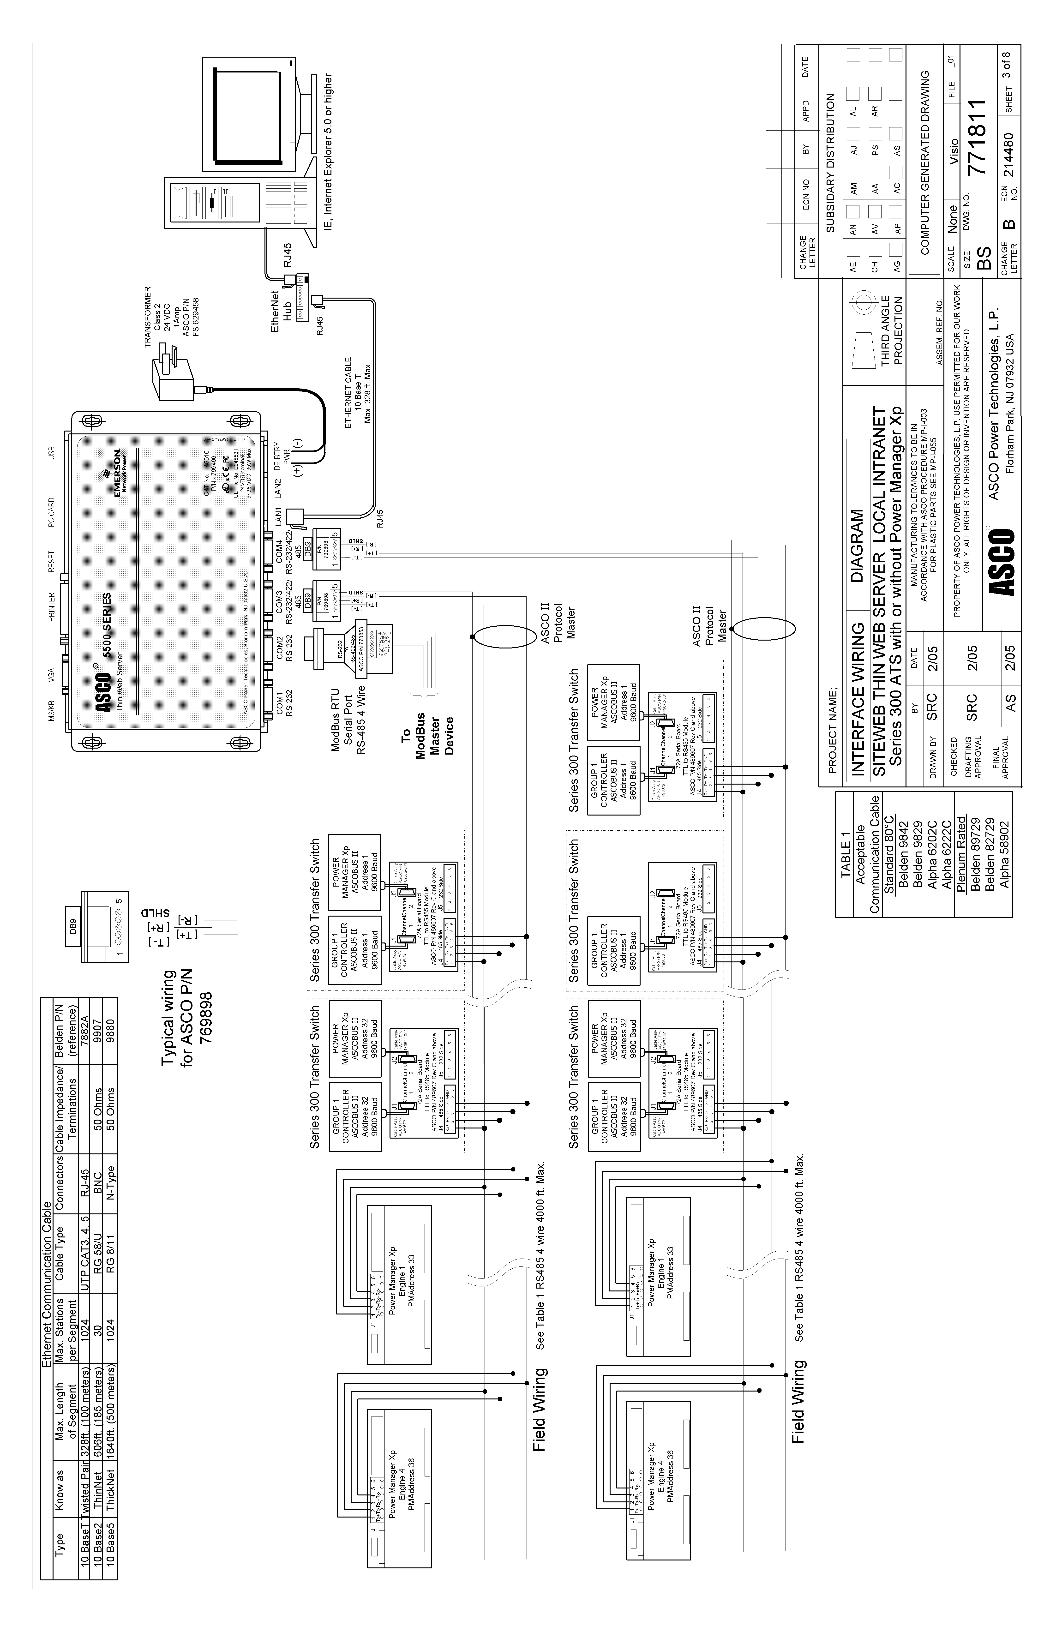 hight resolution of asco 7000 series ats wiring diagram collection emerson 5500 series user manual pdf download inside